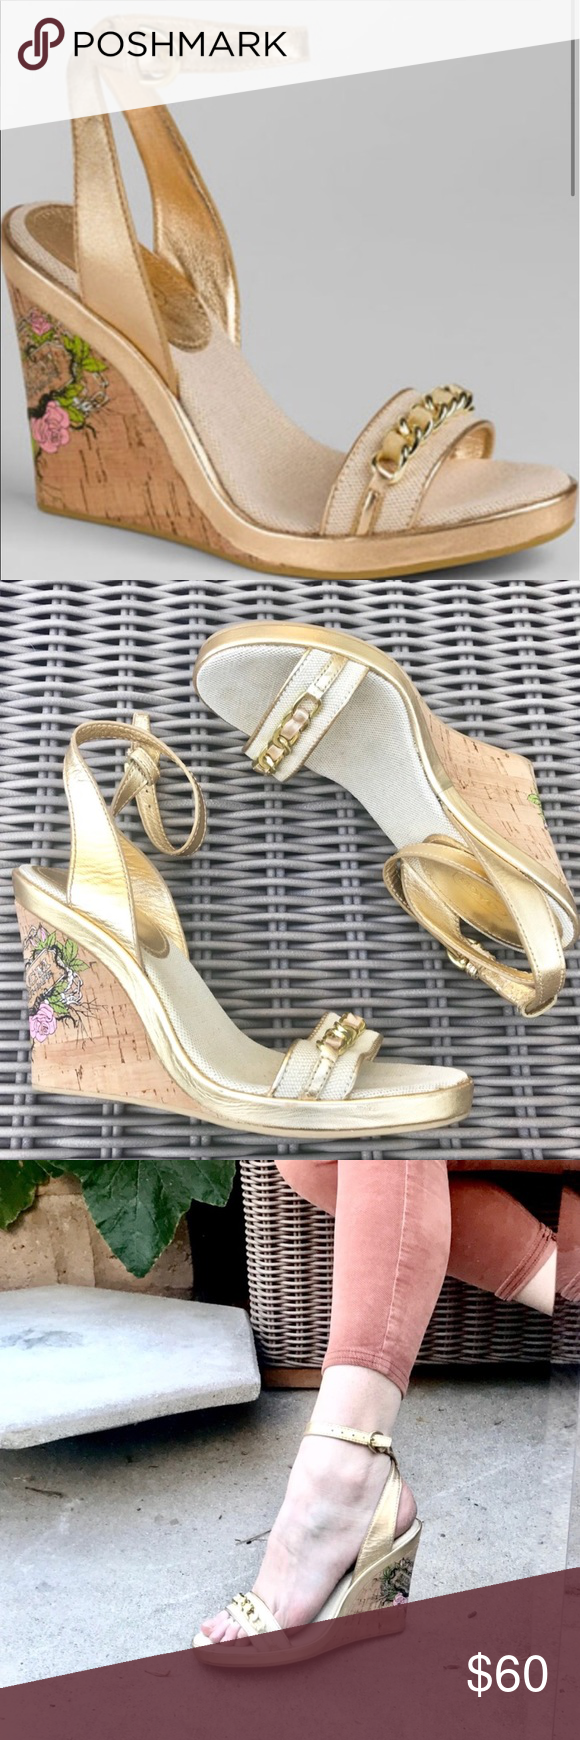 603538d78fdc COACH GOLD leather wedge Heels Strappy Sandals 7.5